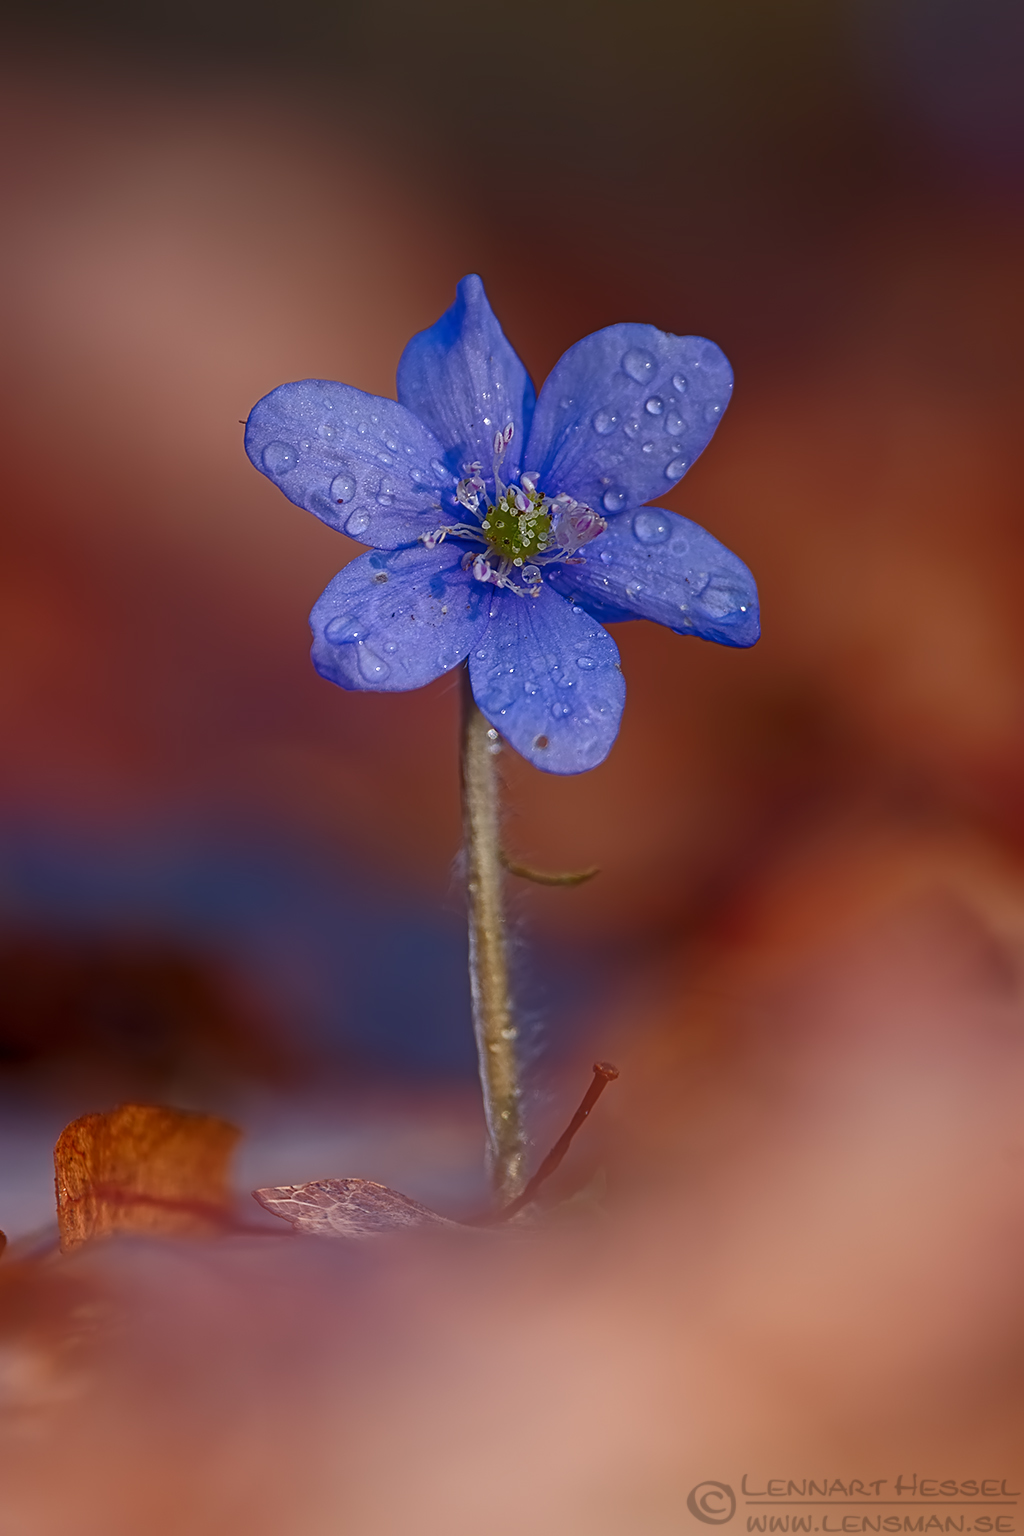 Common Hepatica fierce